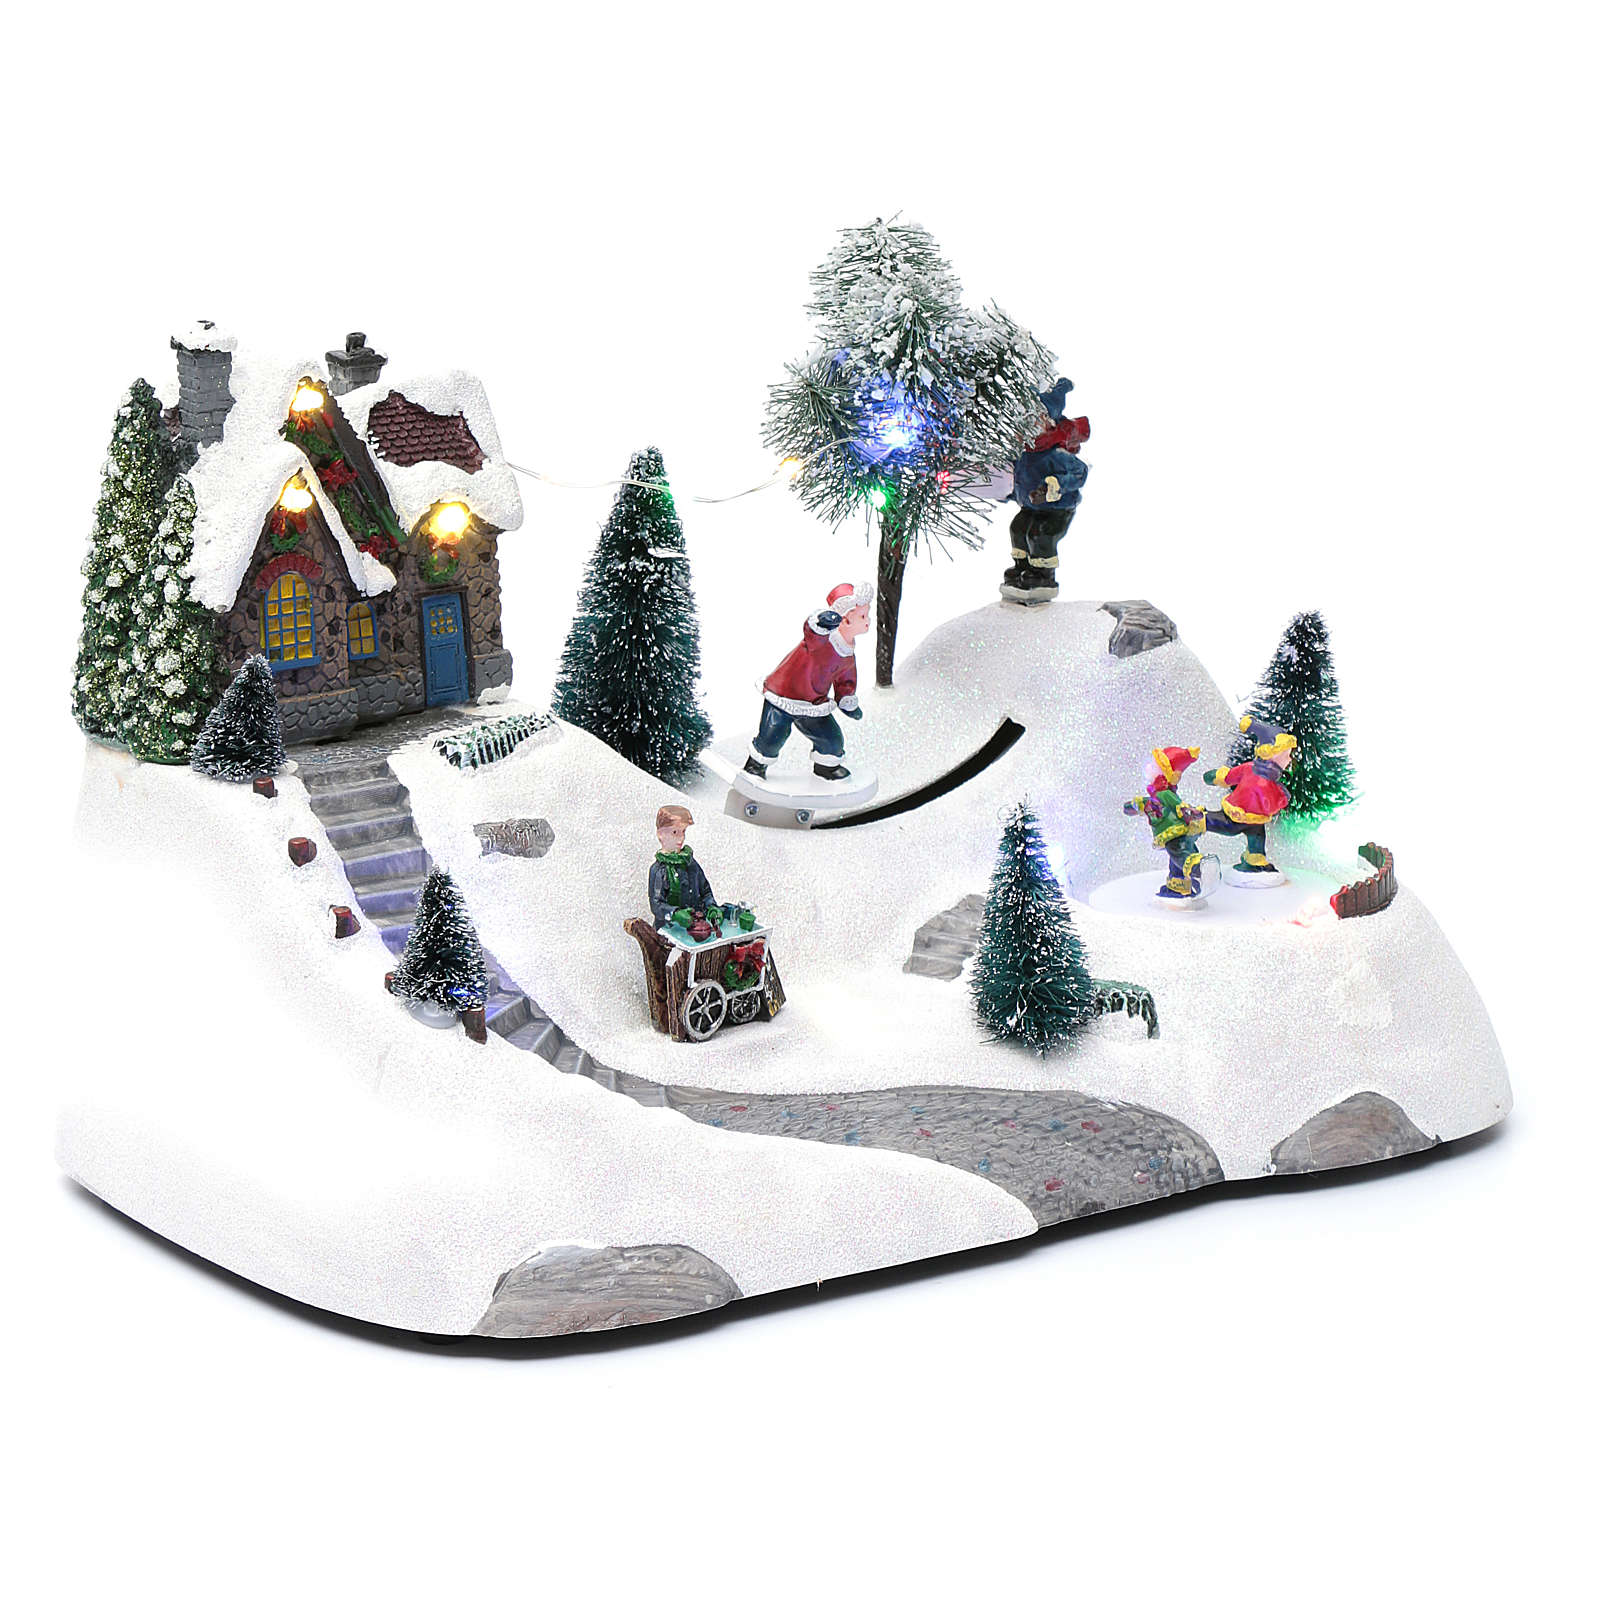 Moving christmas scene with music and ice skating | online sales on ...